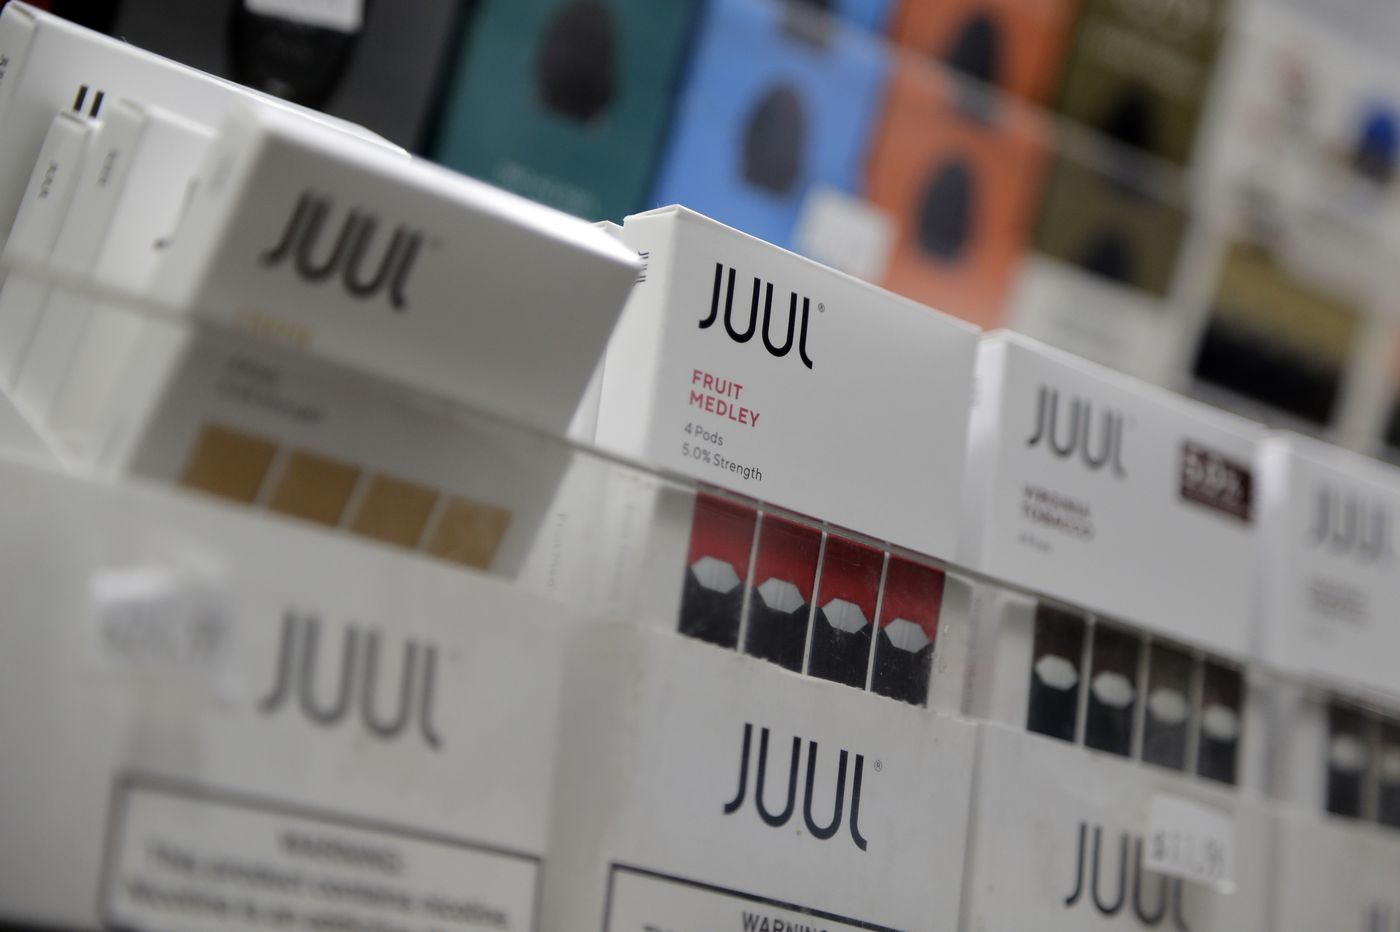 E-cigarette maker Juul warned by FDA for claiming products are safer than cigarettes